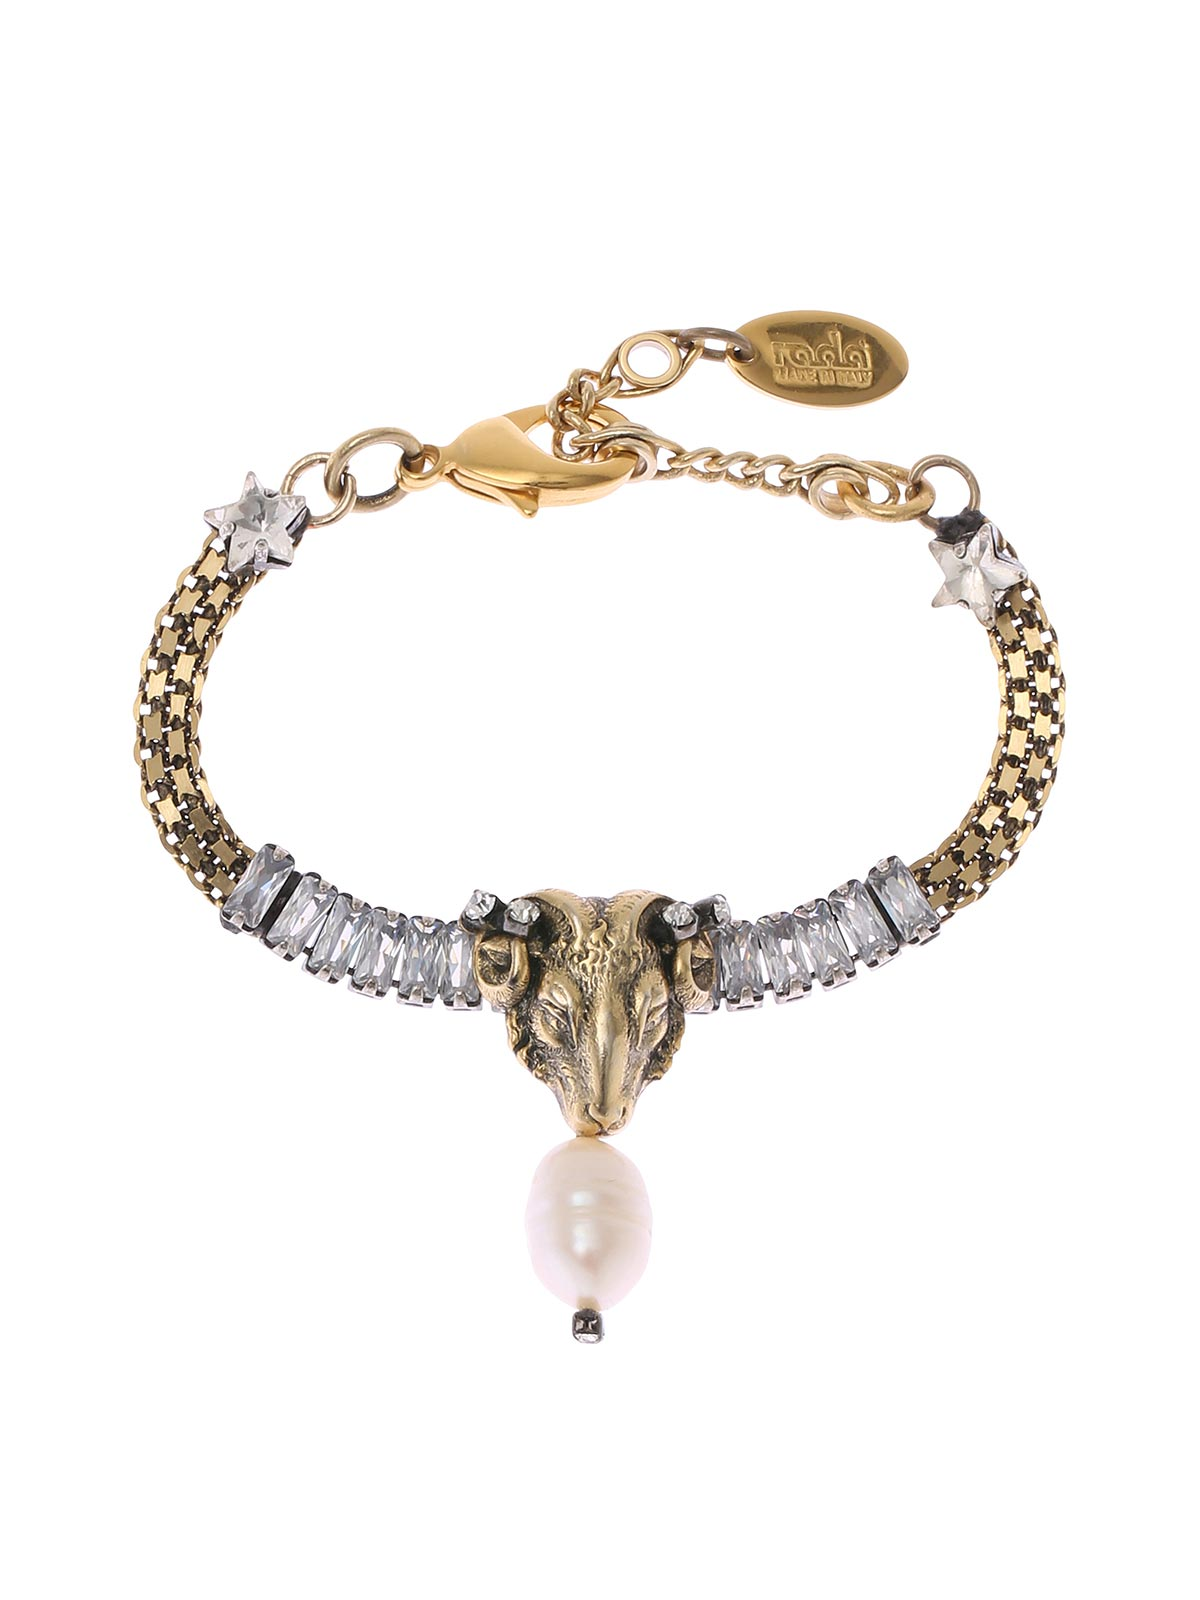 Brass chain bracelet with aries and crystals